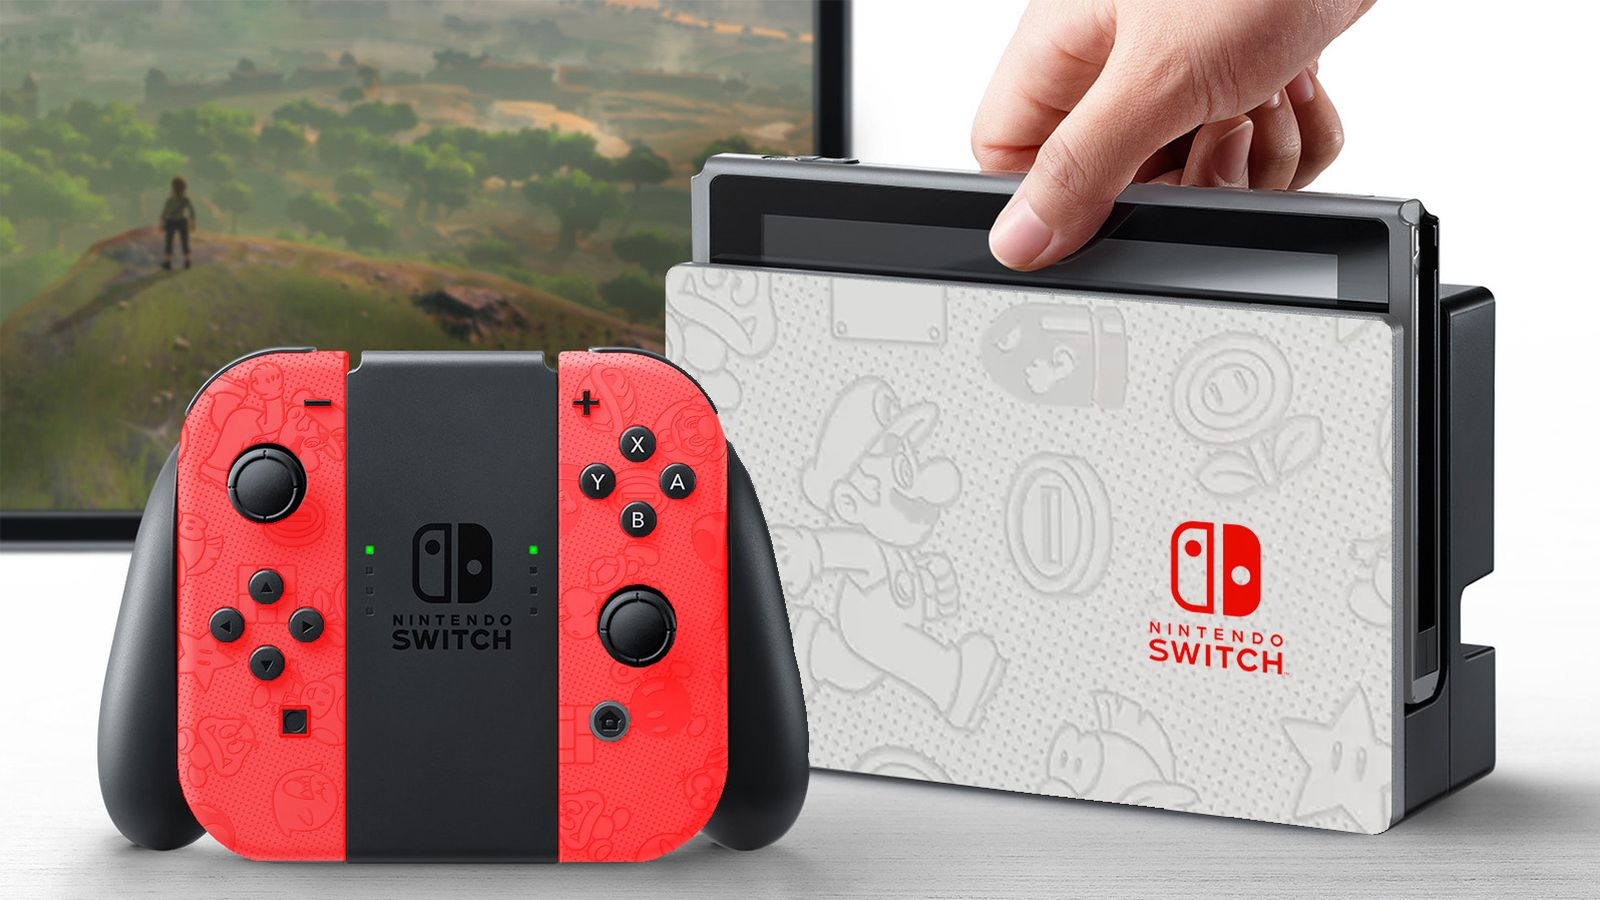 Nintendo Switch Computer Wallpaper 60382 1600x900px